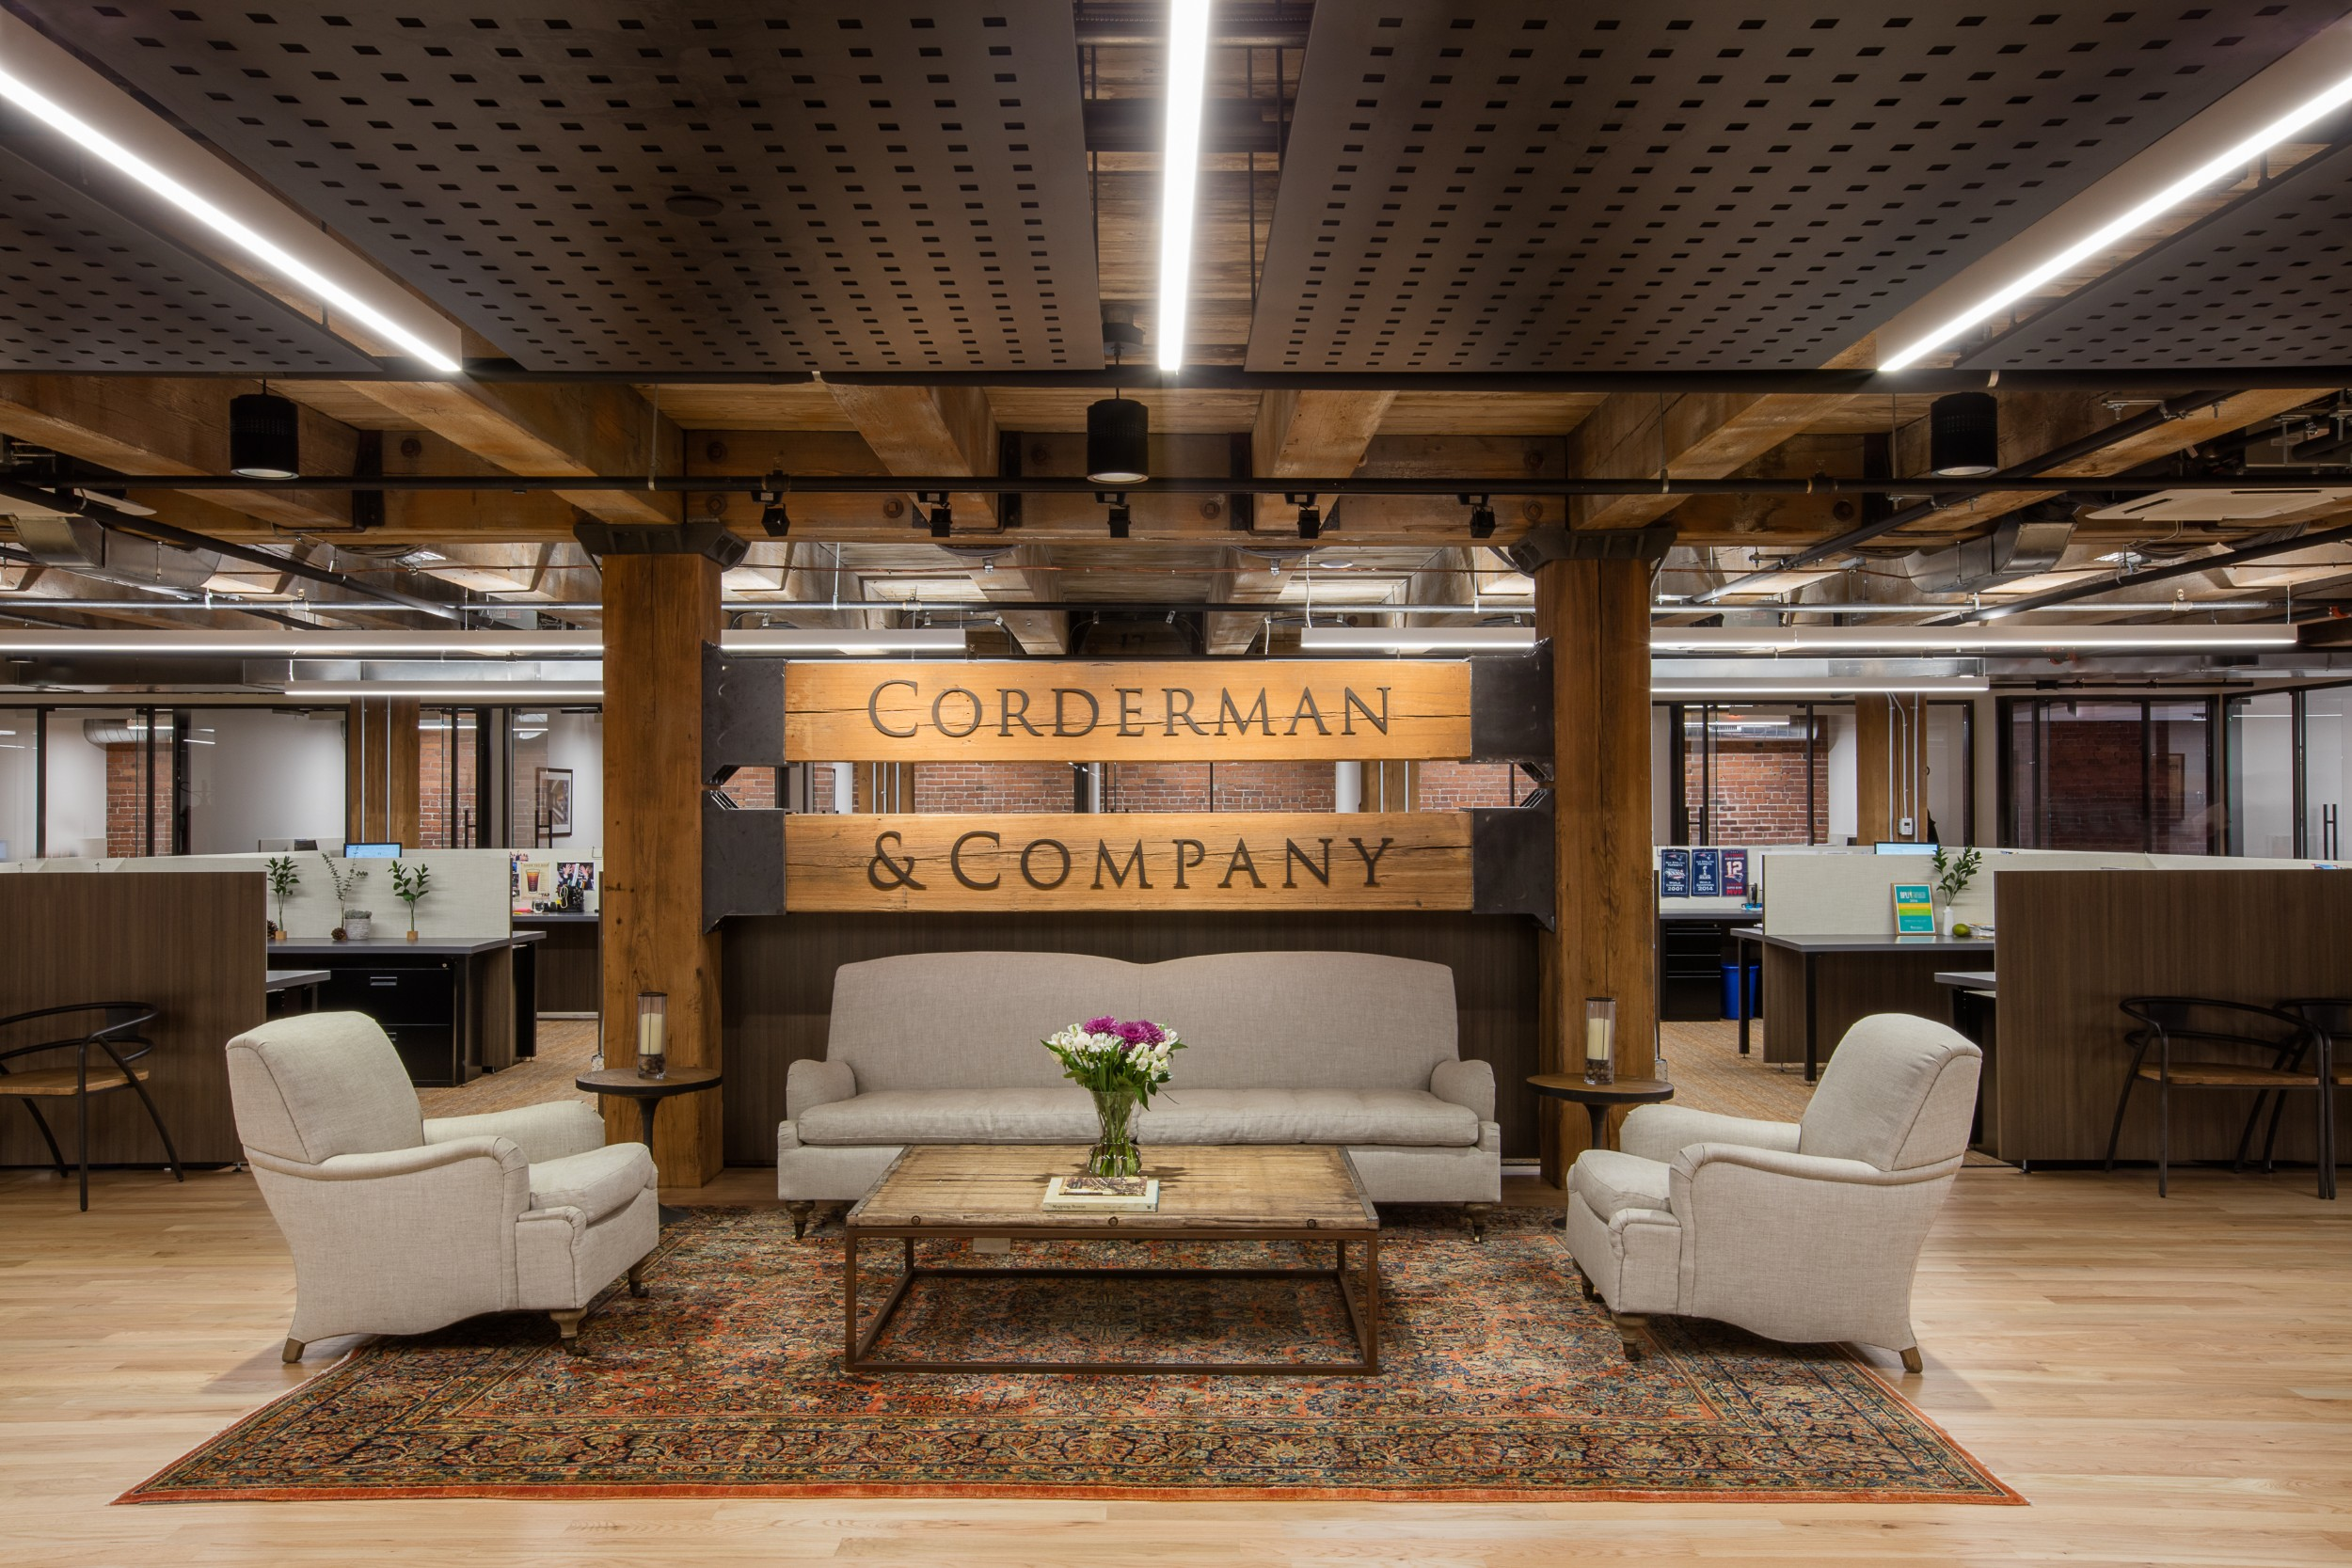 Corderman_Office_Entrance_Signage.jpg